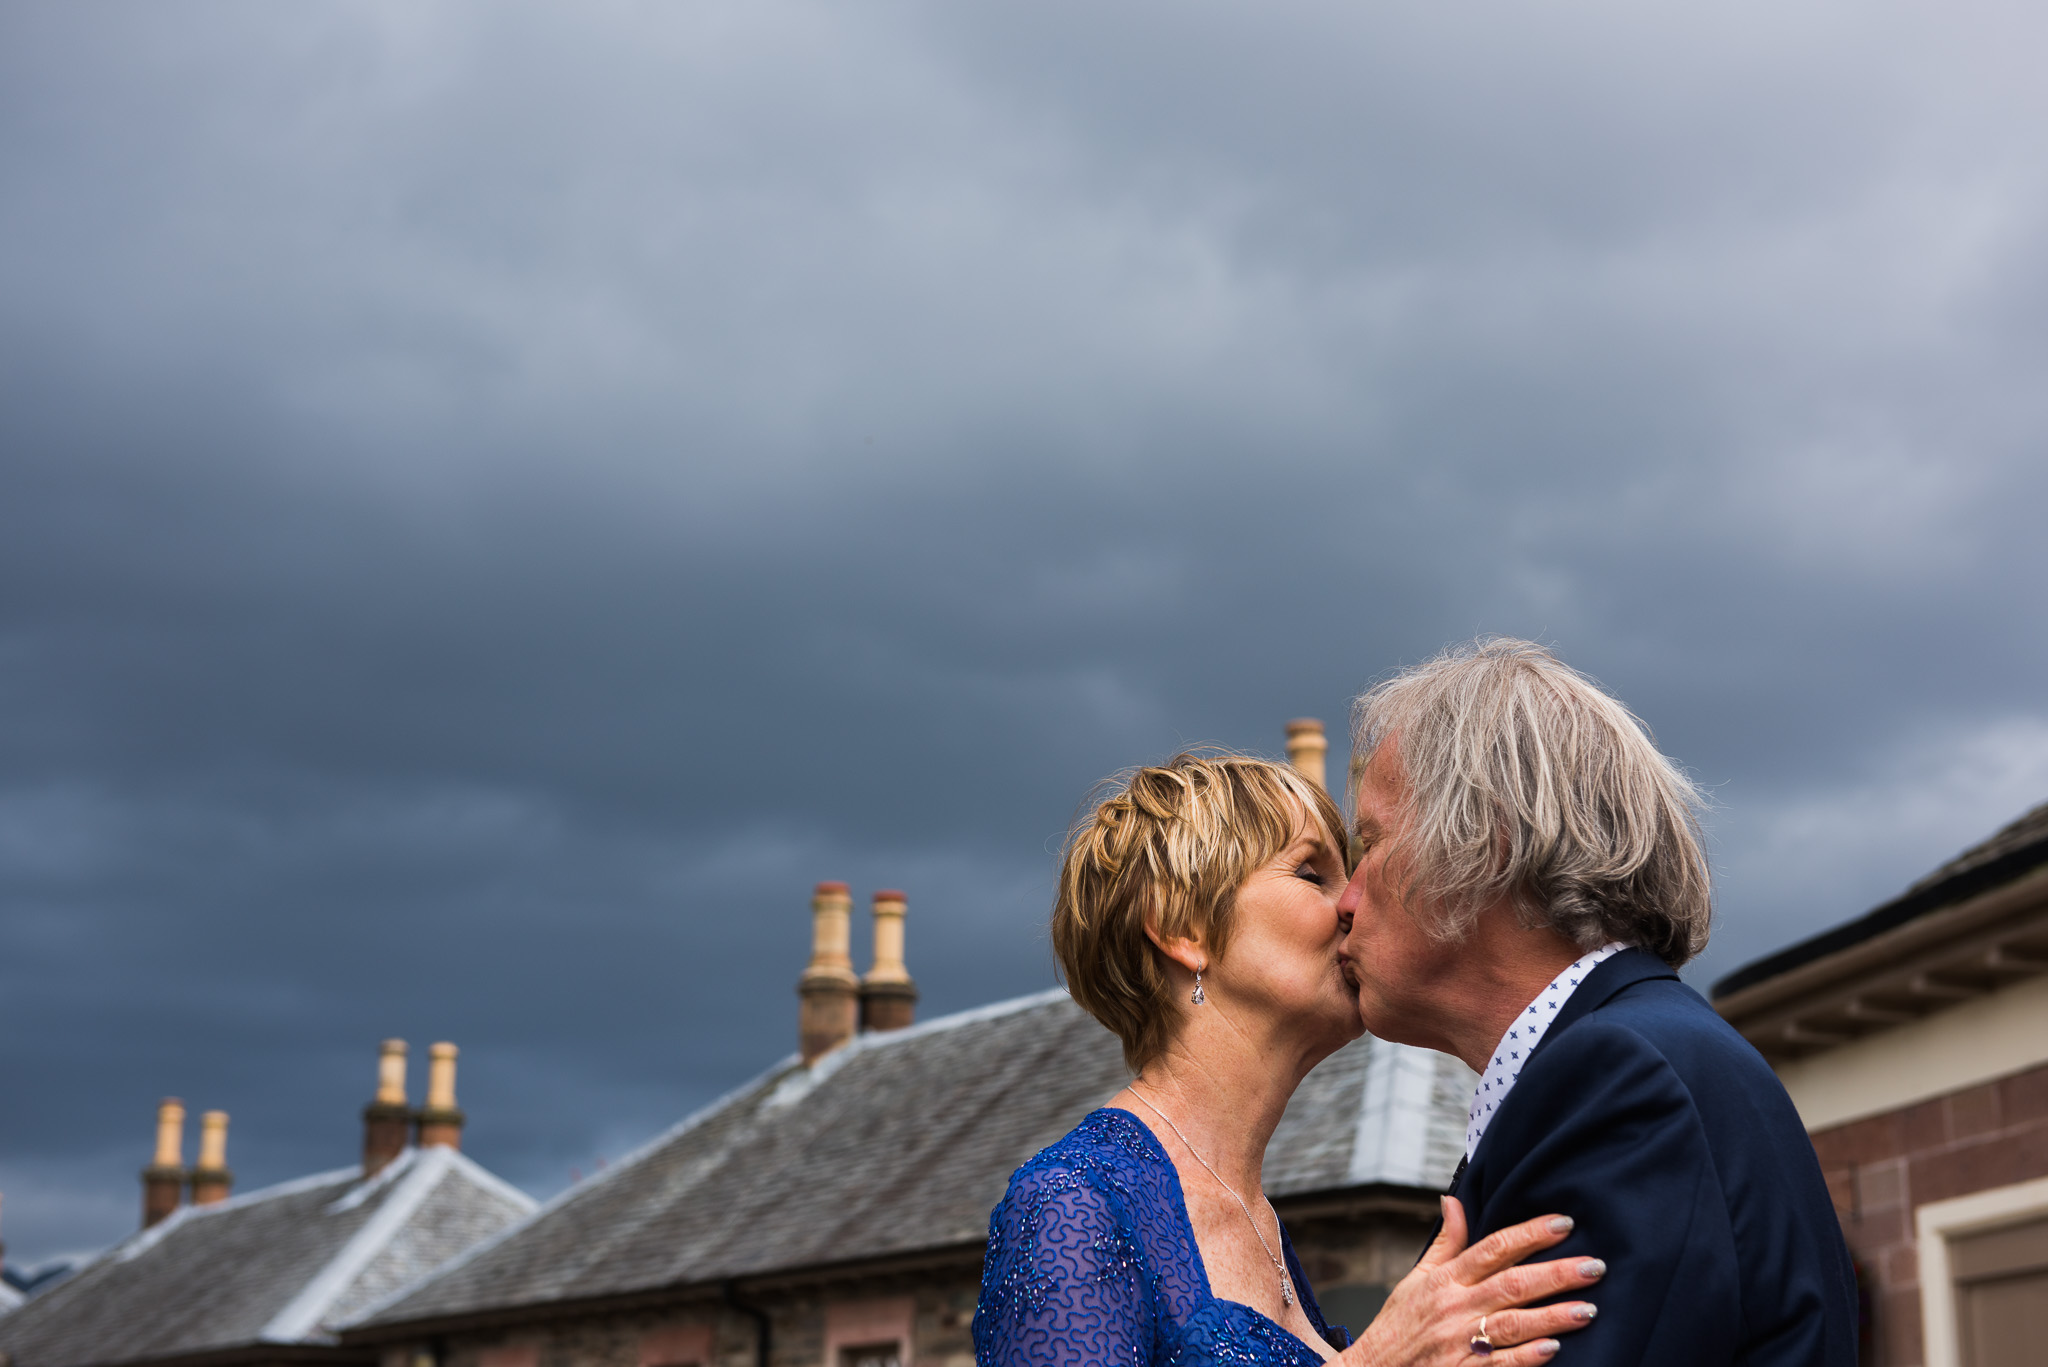 Wedding kiss in Luss, Loch Lomond